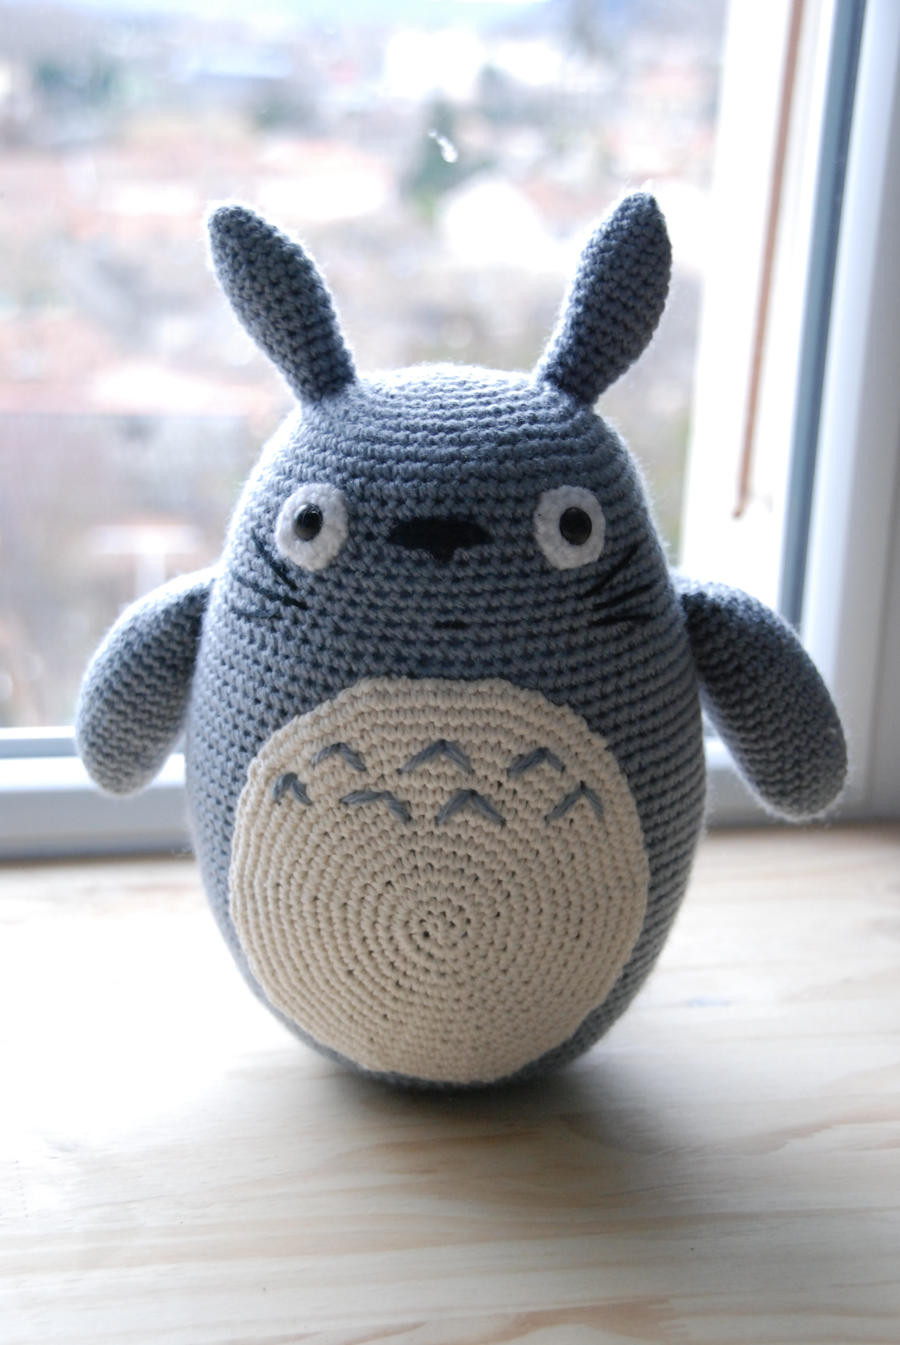 Crochet : Totoro by Ahookamigurumi on DeviantArt